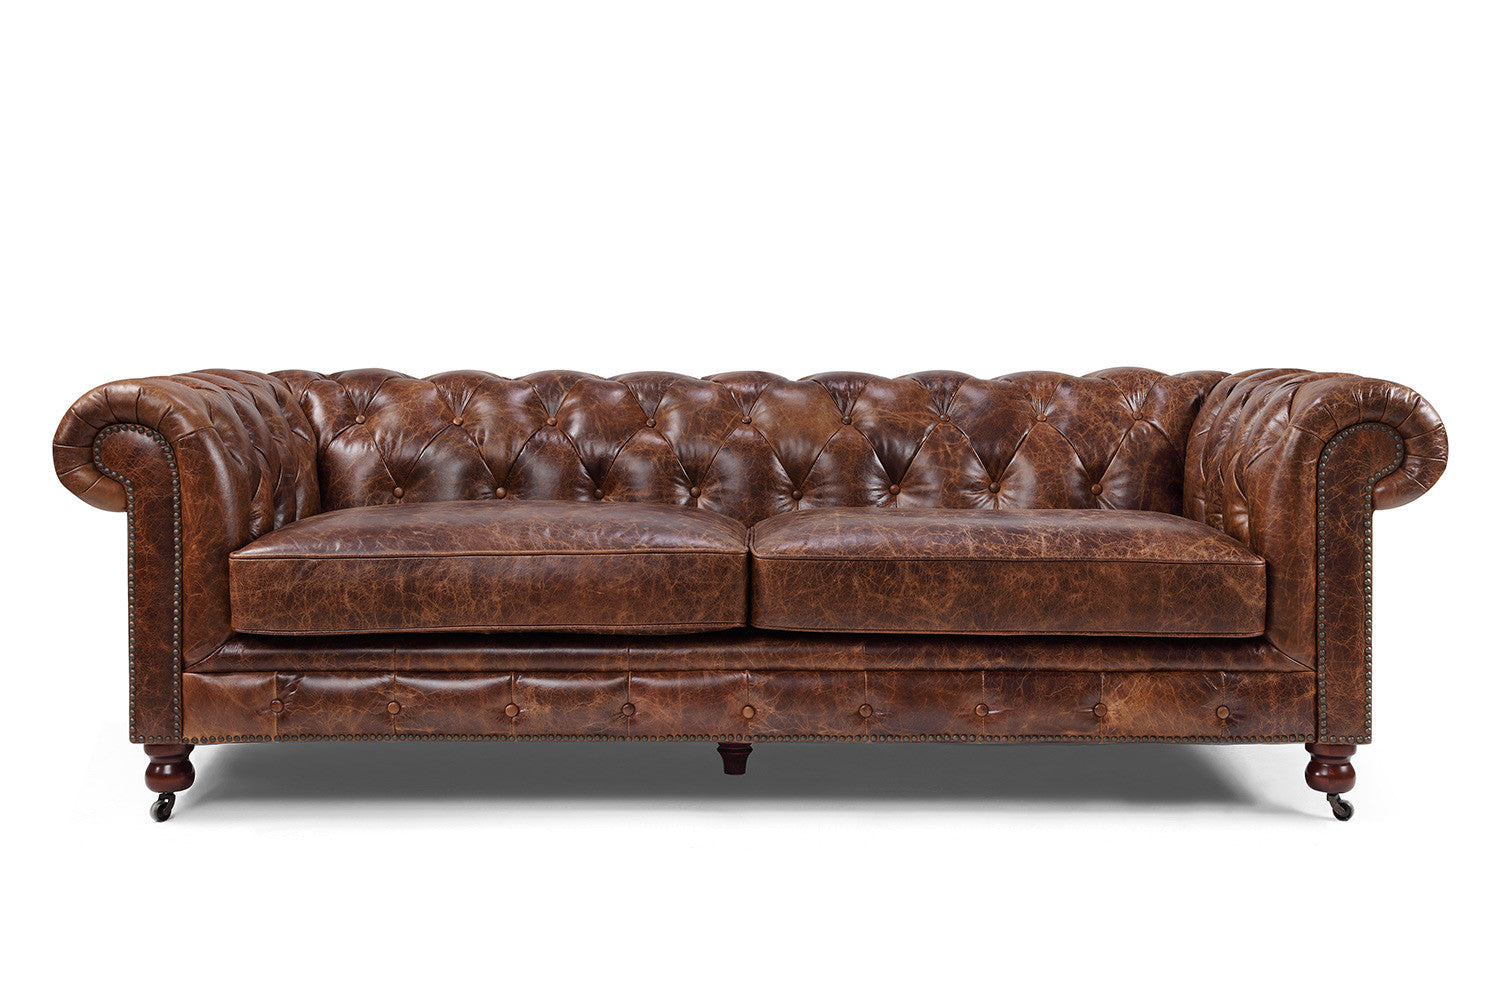 The kensington chesterfield tufted sofa rose and moore - Sofa chester piel ...